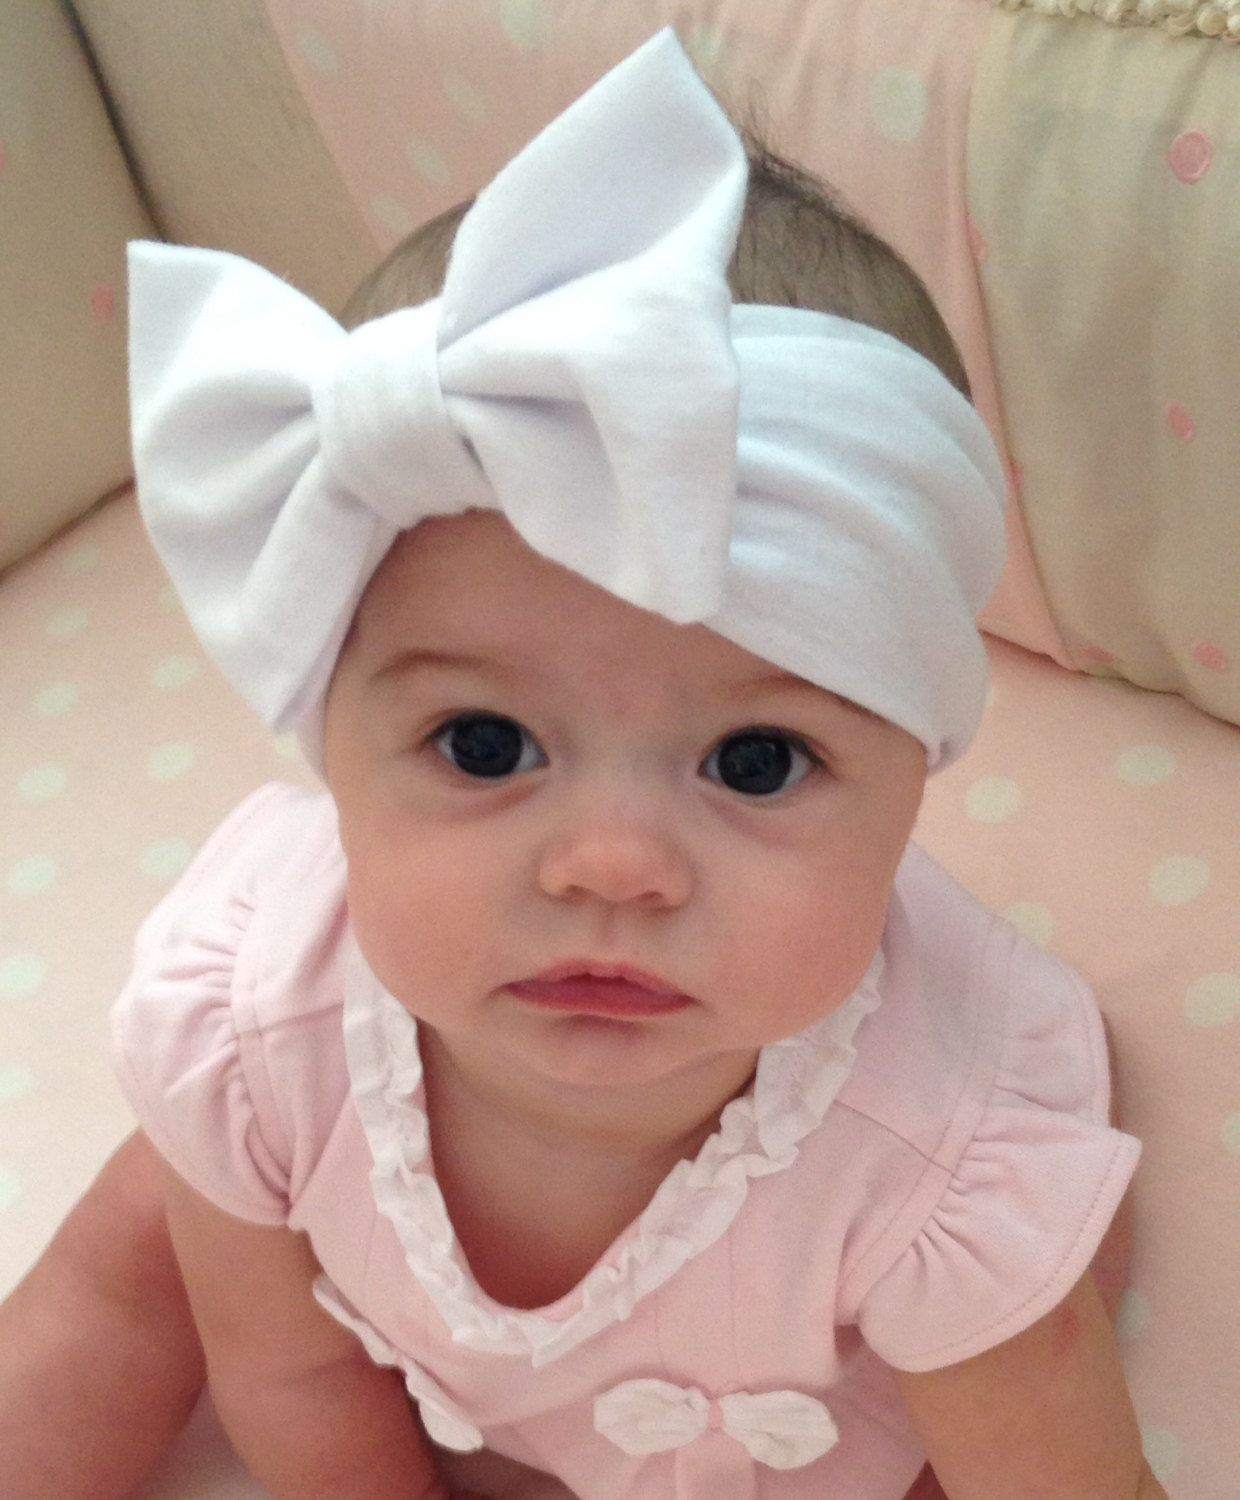 6b4f406ad0888 White Bow Baby Headwrap by QueenysTeenyBowtique on Etsy, $10.00 ...